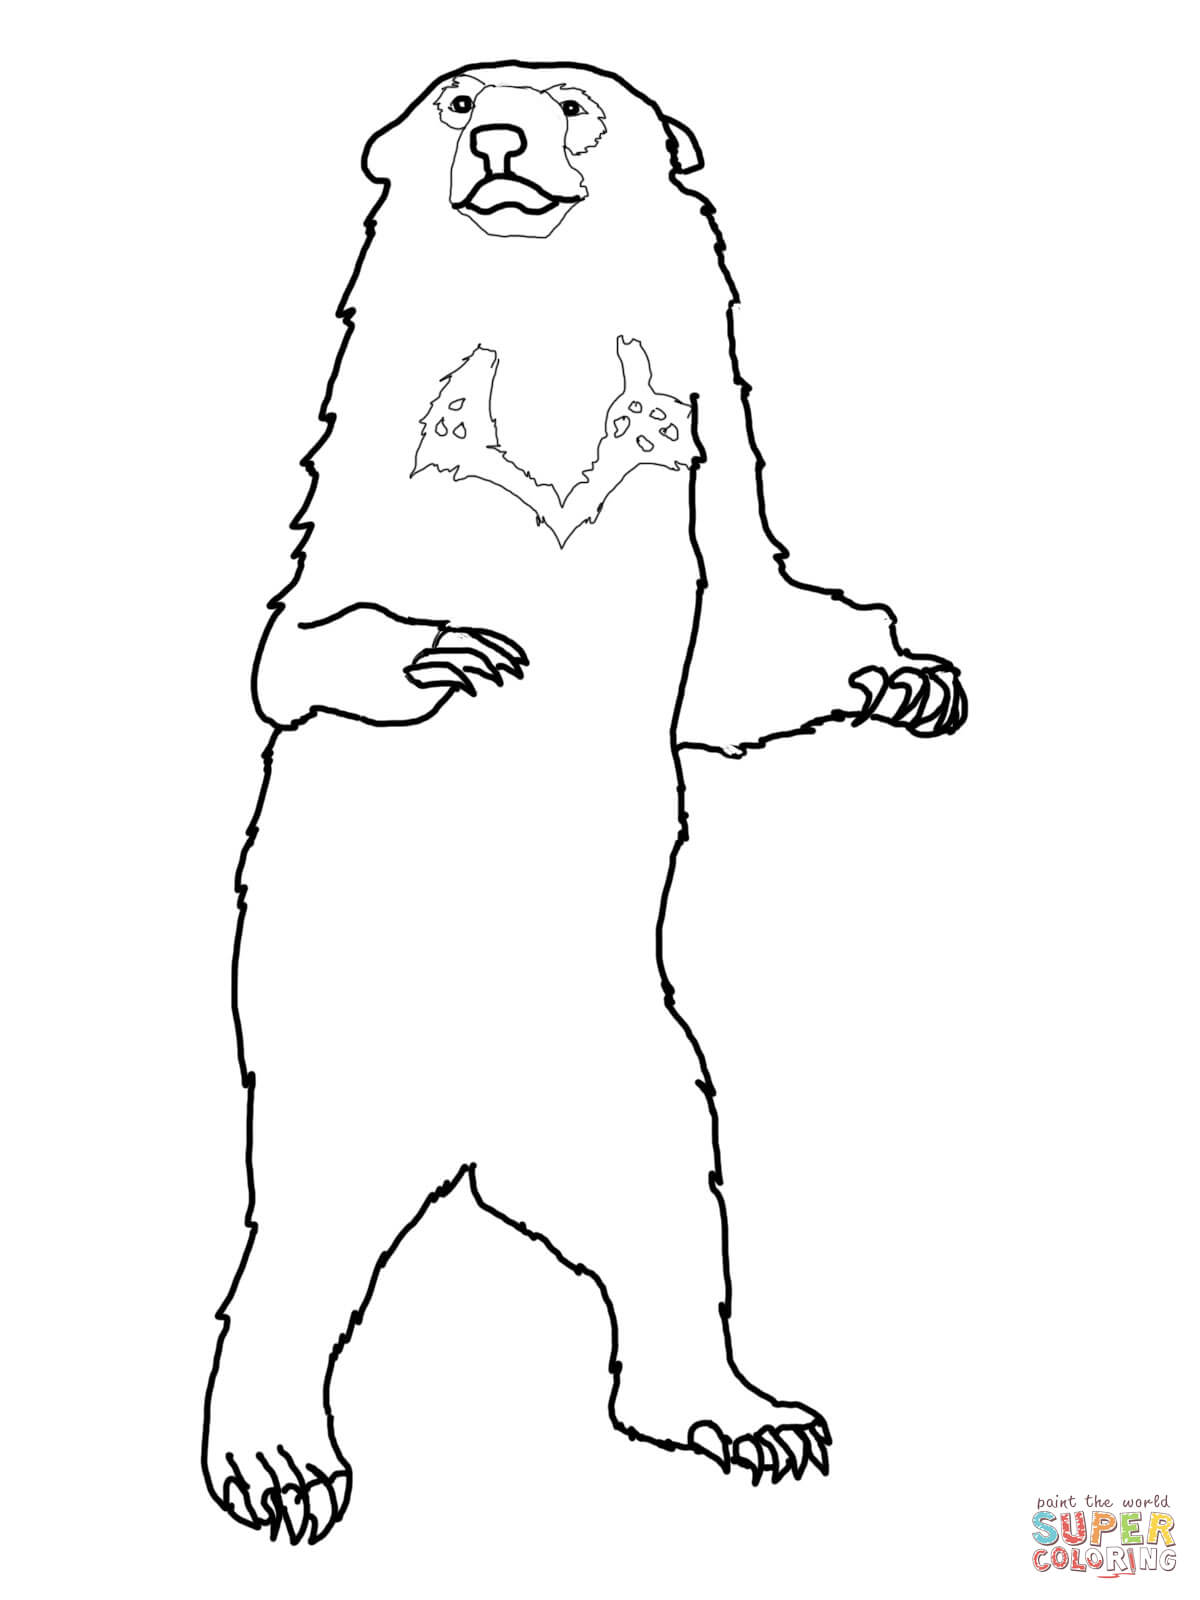 Brown Bear, Brown Bear, What do You See coloring page | Free ...